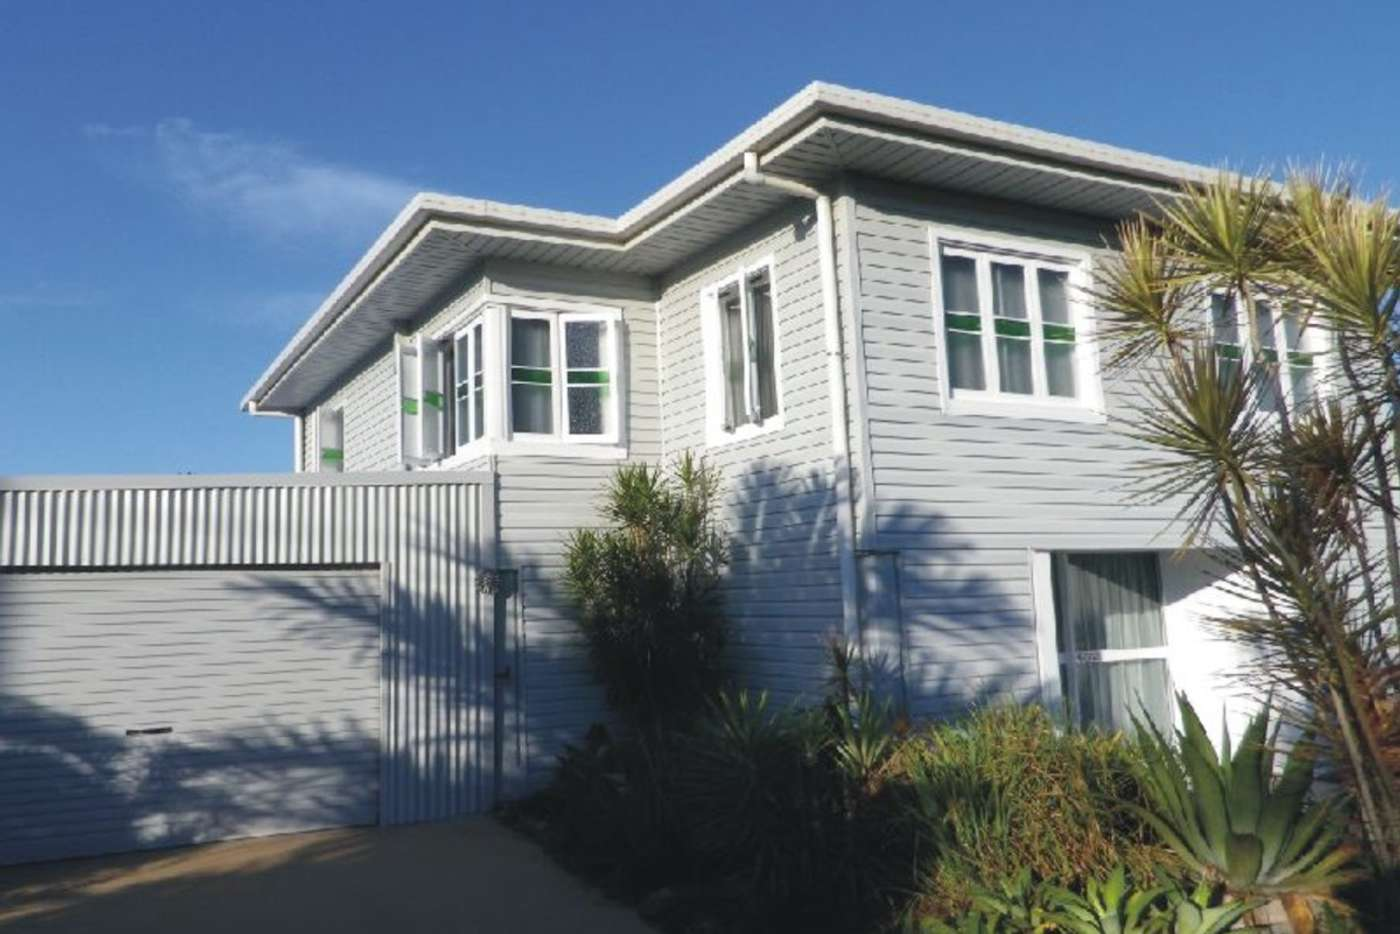 Main view of Homely house listing, 38 Cartwright Street, Ingham QLD 4850